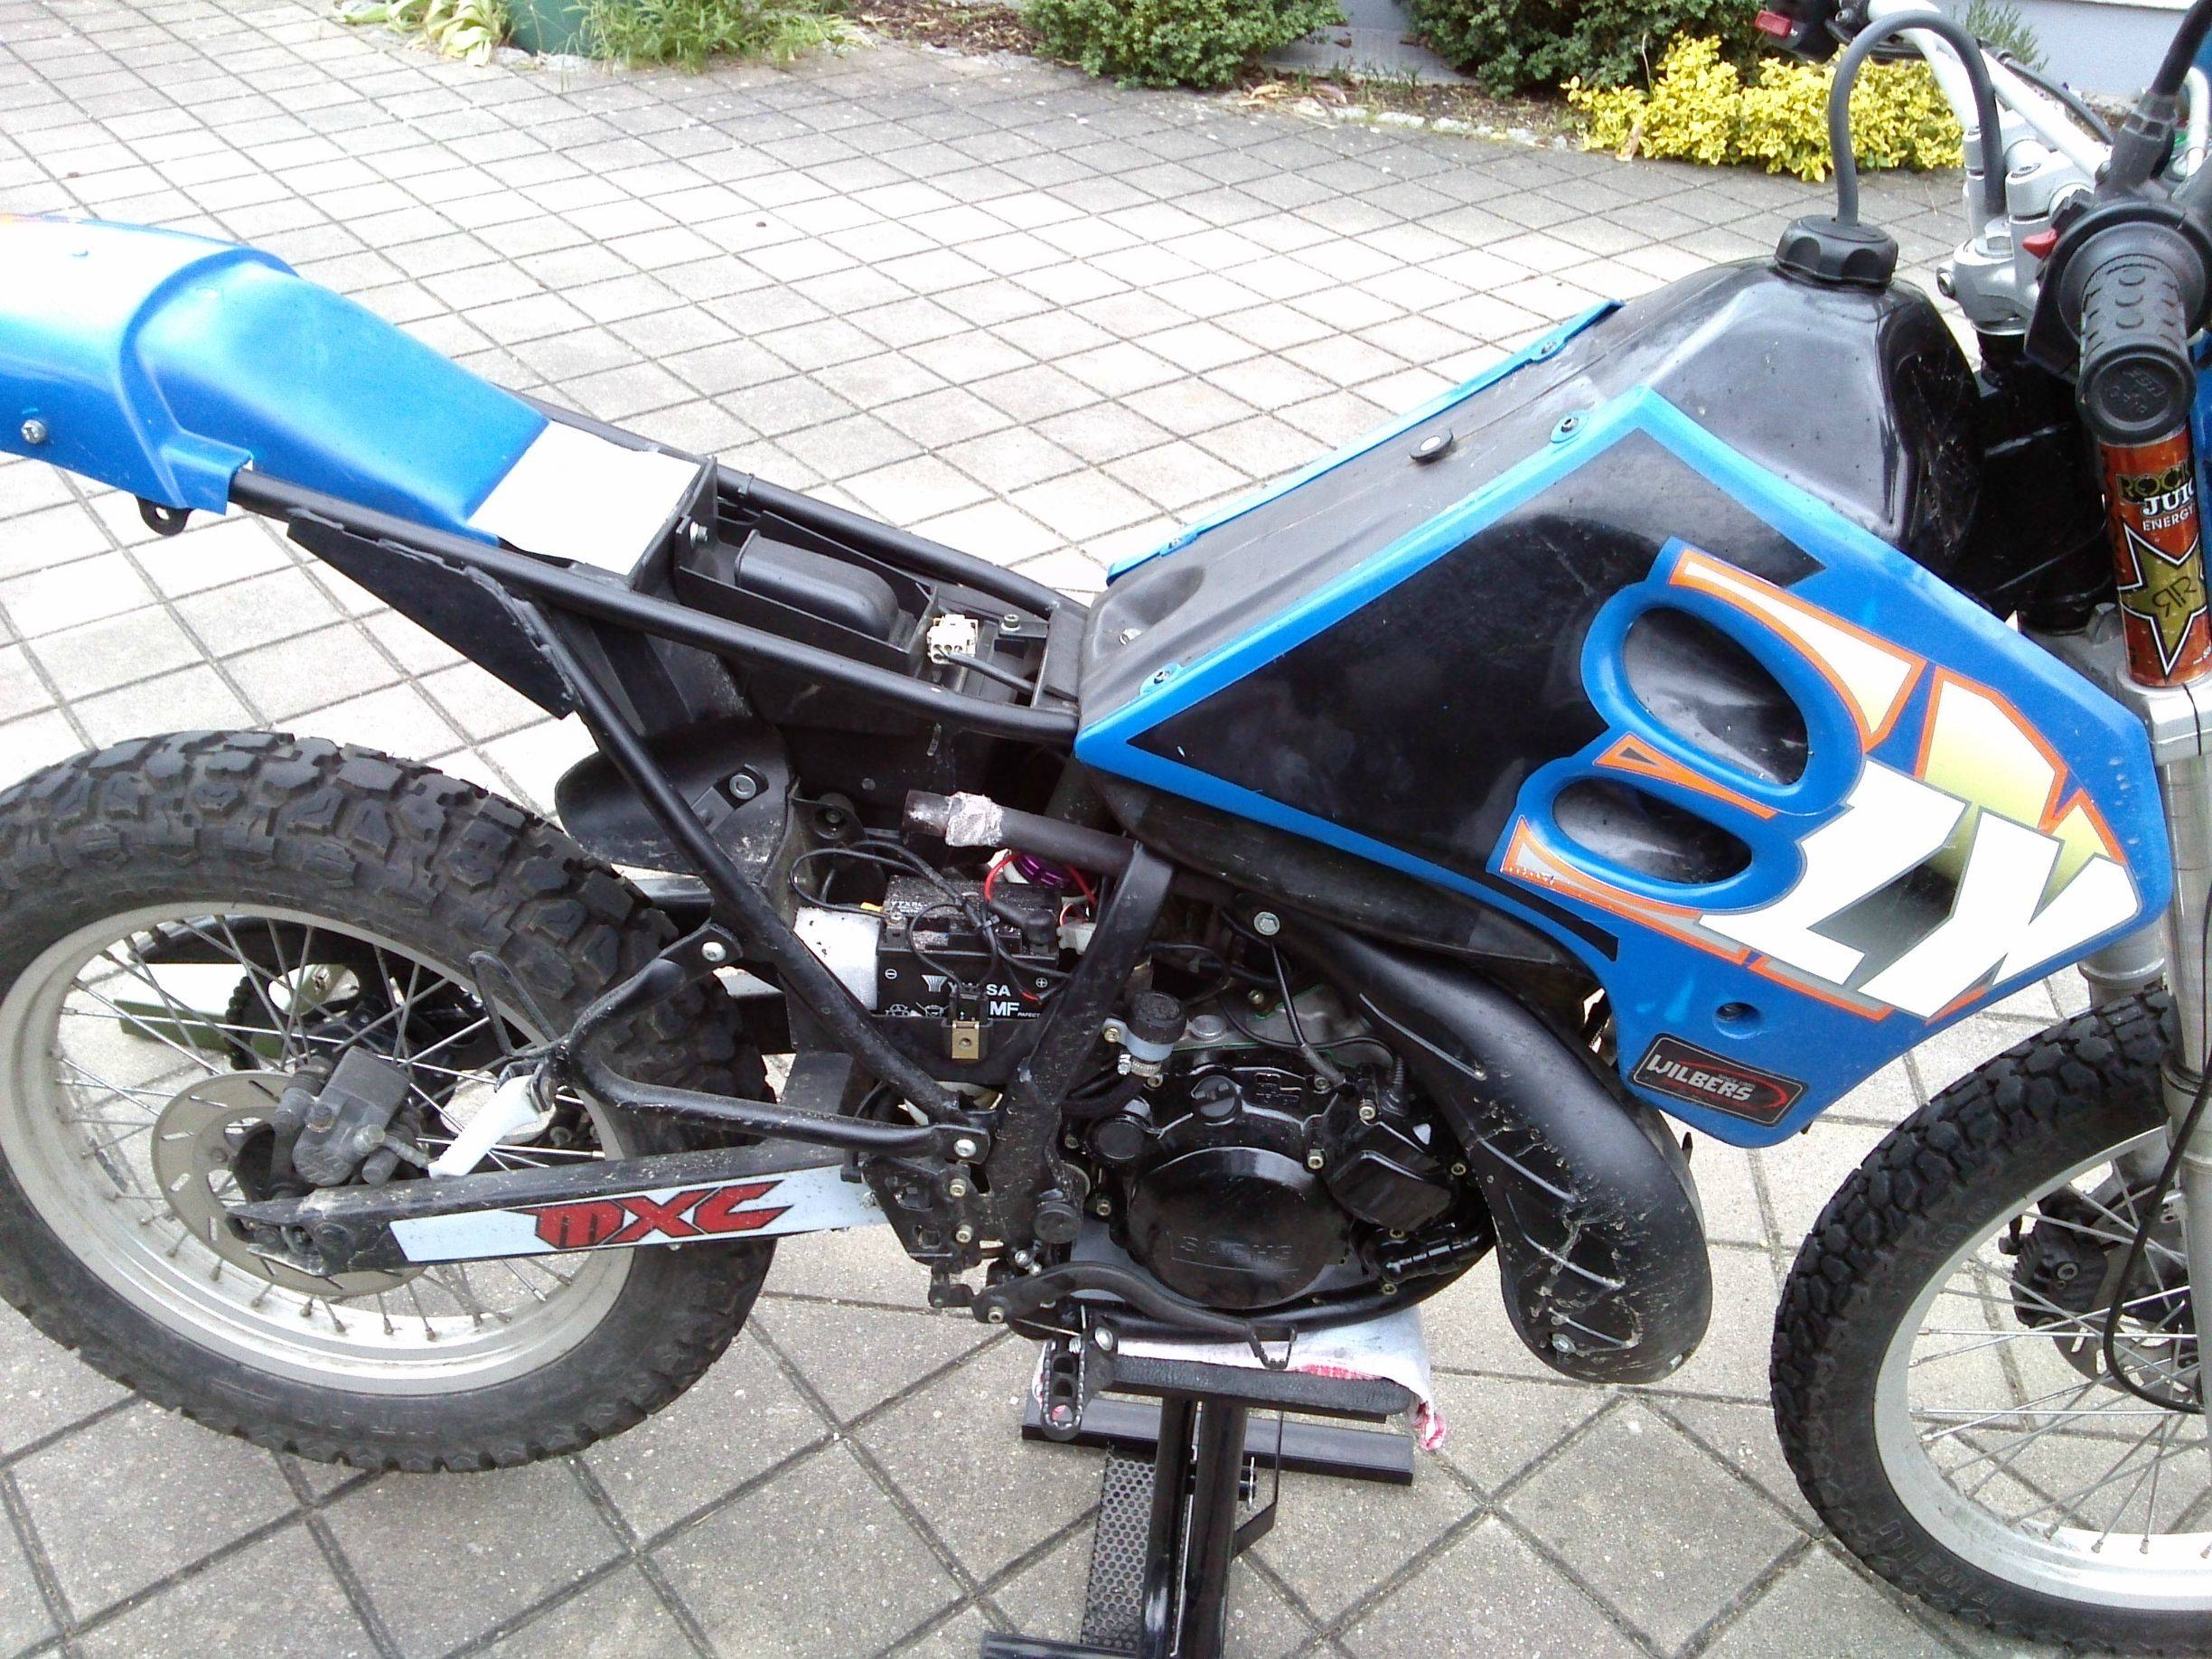 Sachs ZX 125 1997 images #124120